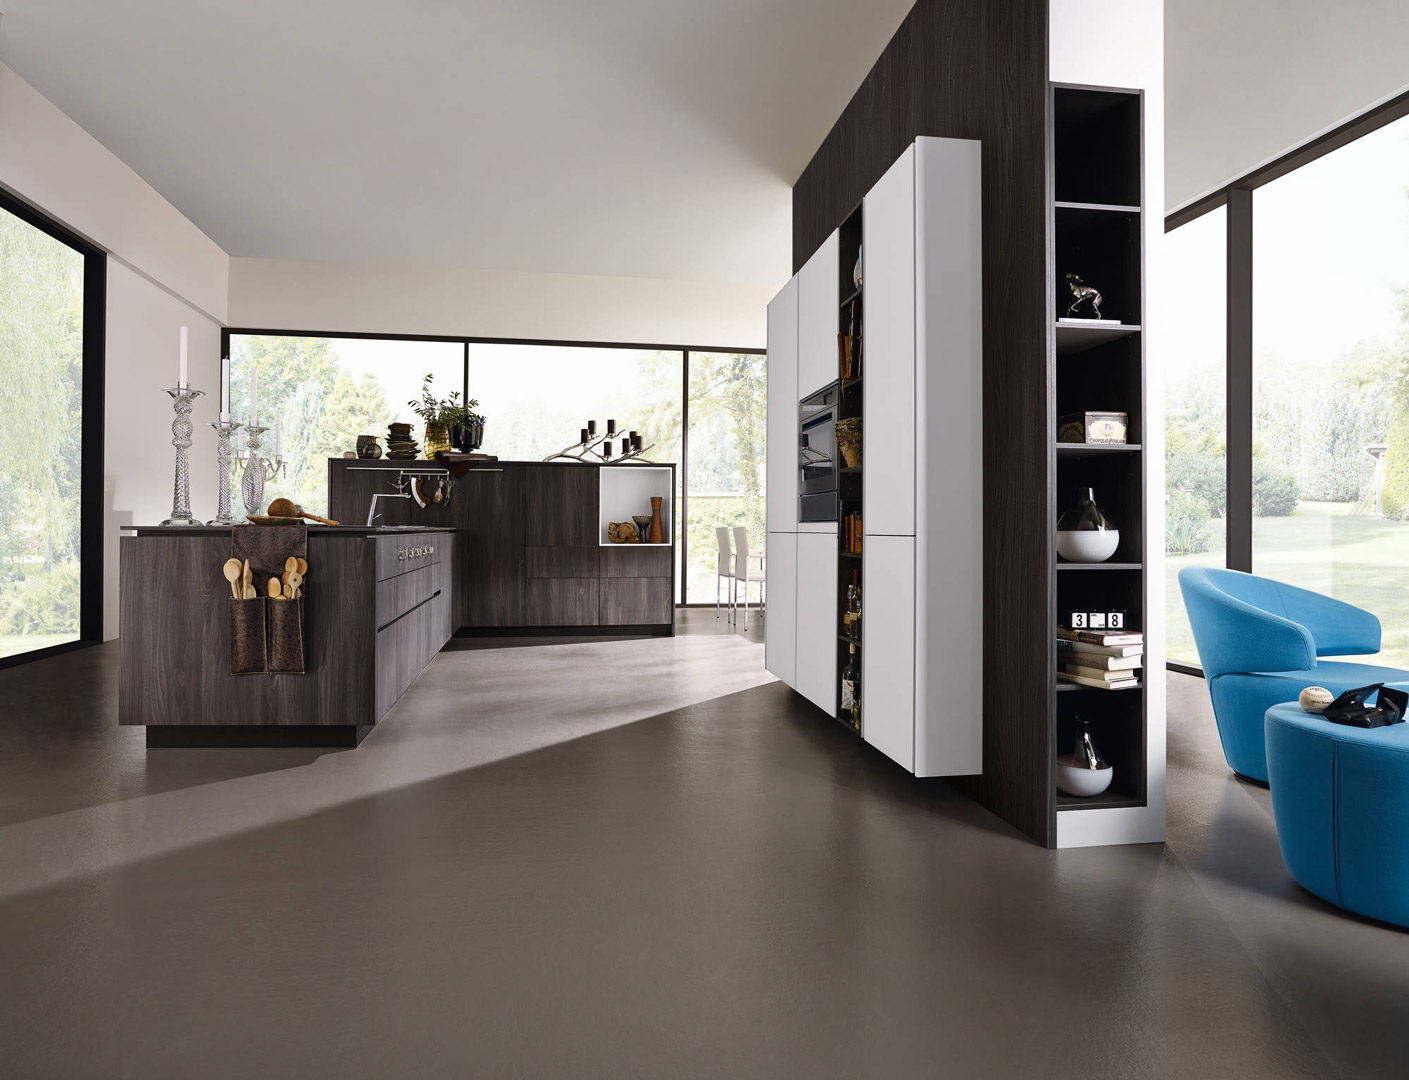 alno kchen collect this idea kitchen alno with alno kchen fabulous alno kchen with alno kchen. Black Bedroom Furniture Sets. Home Design Ideas